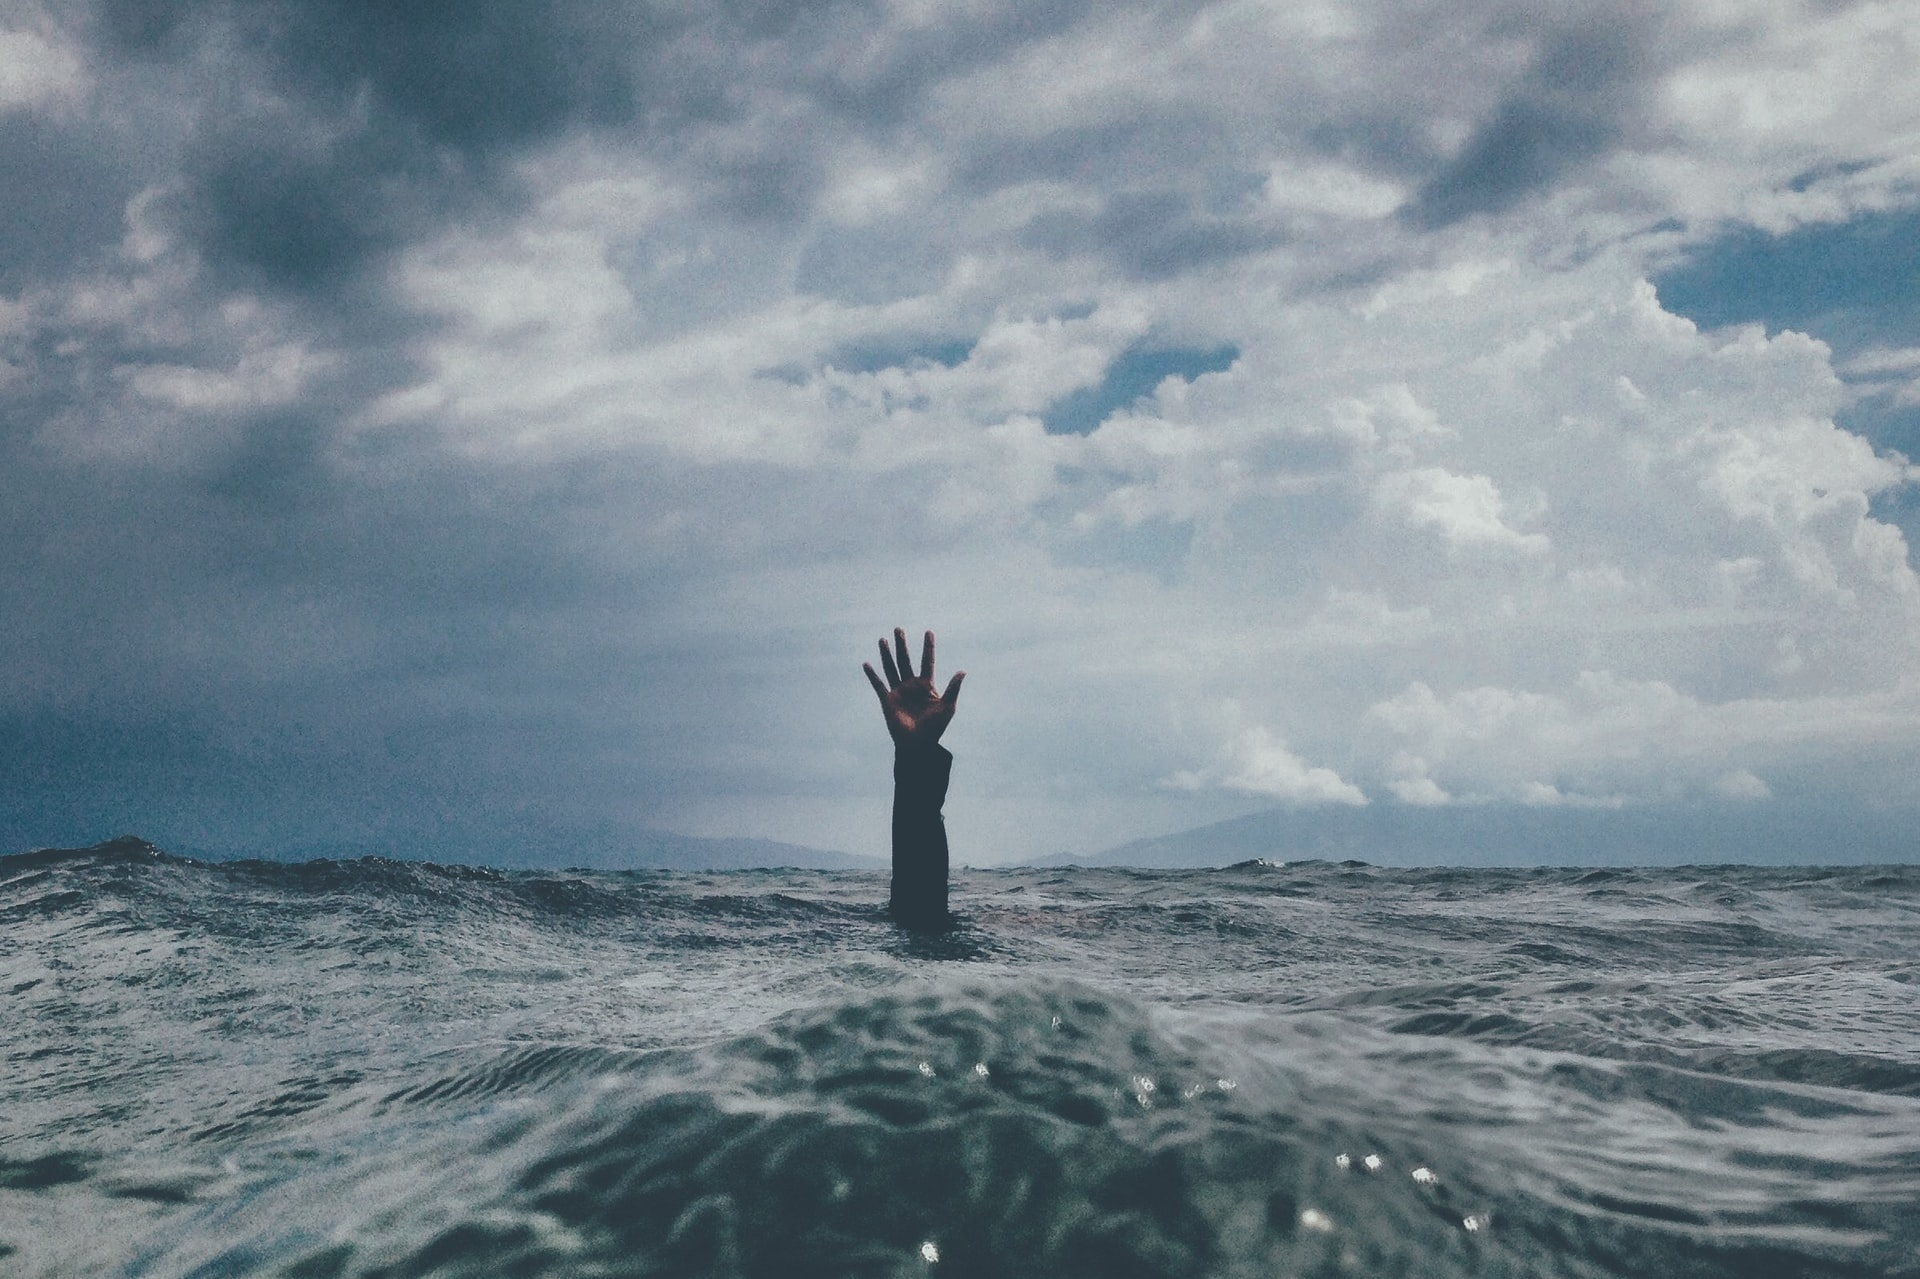 Hand sticking out of ocean